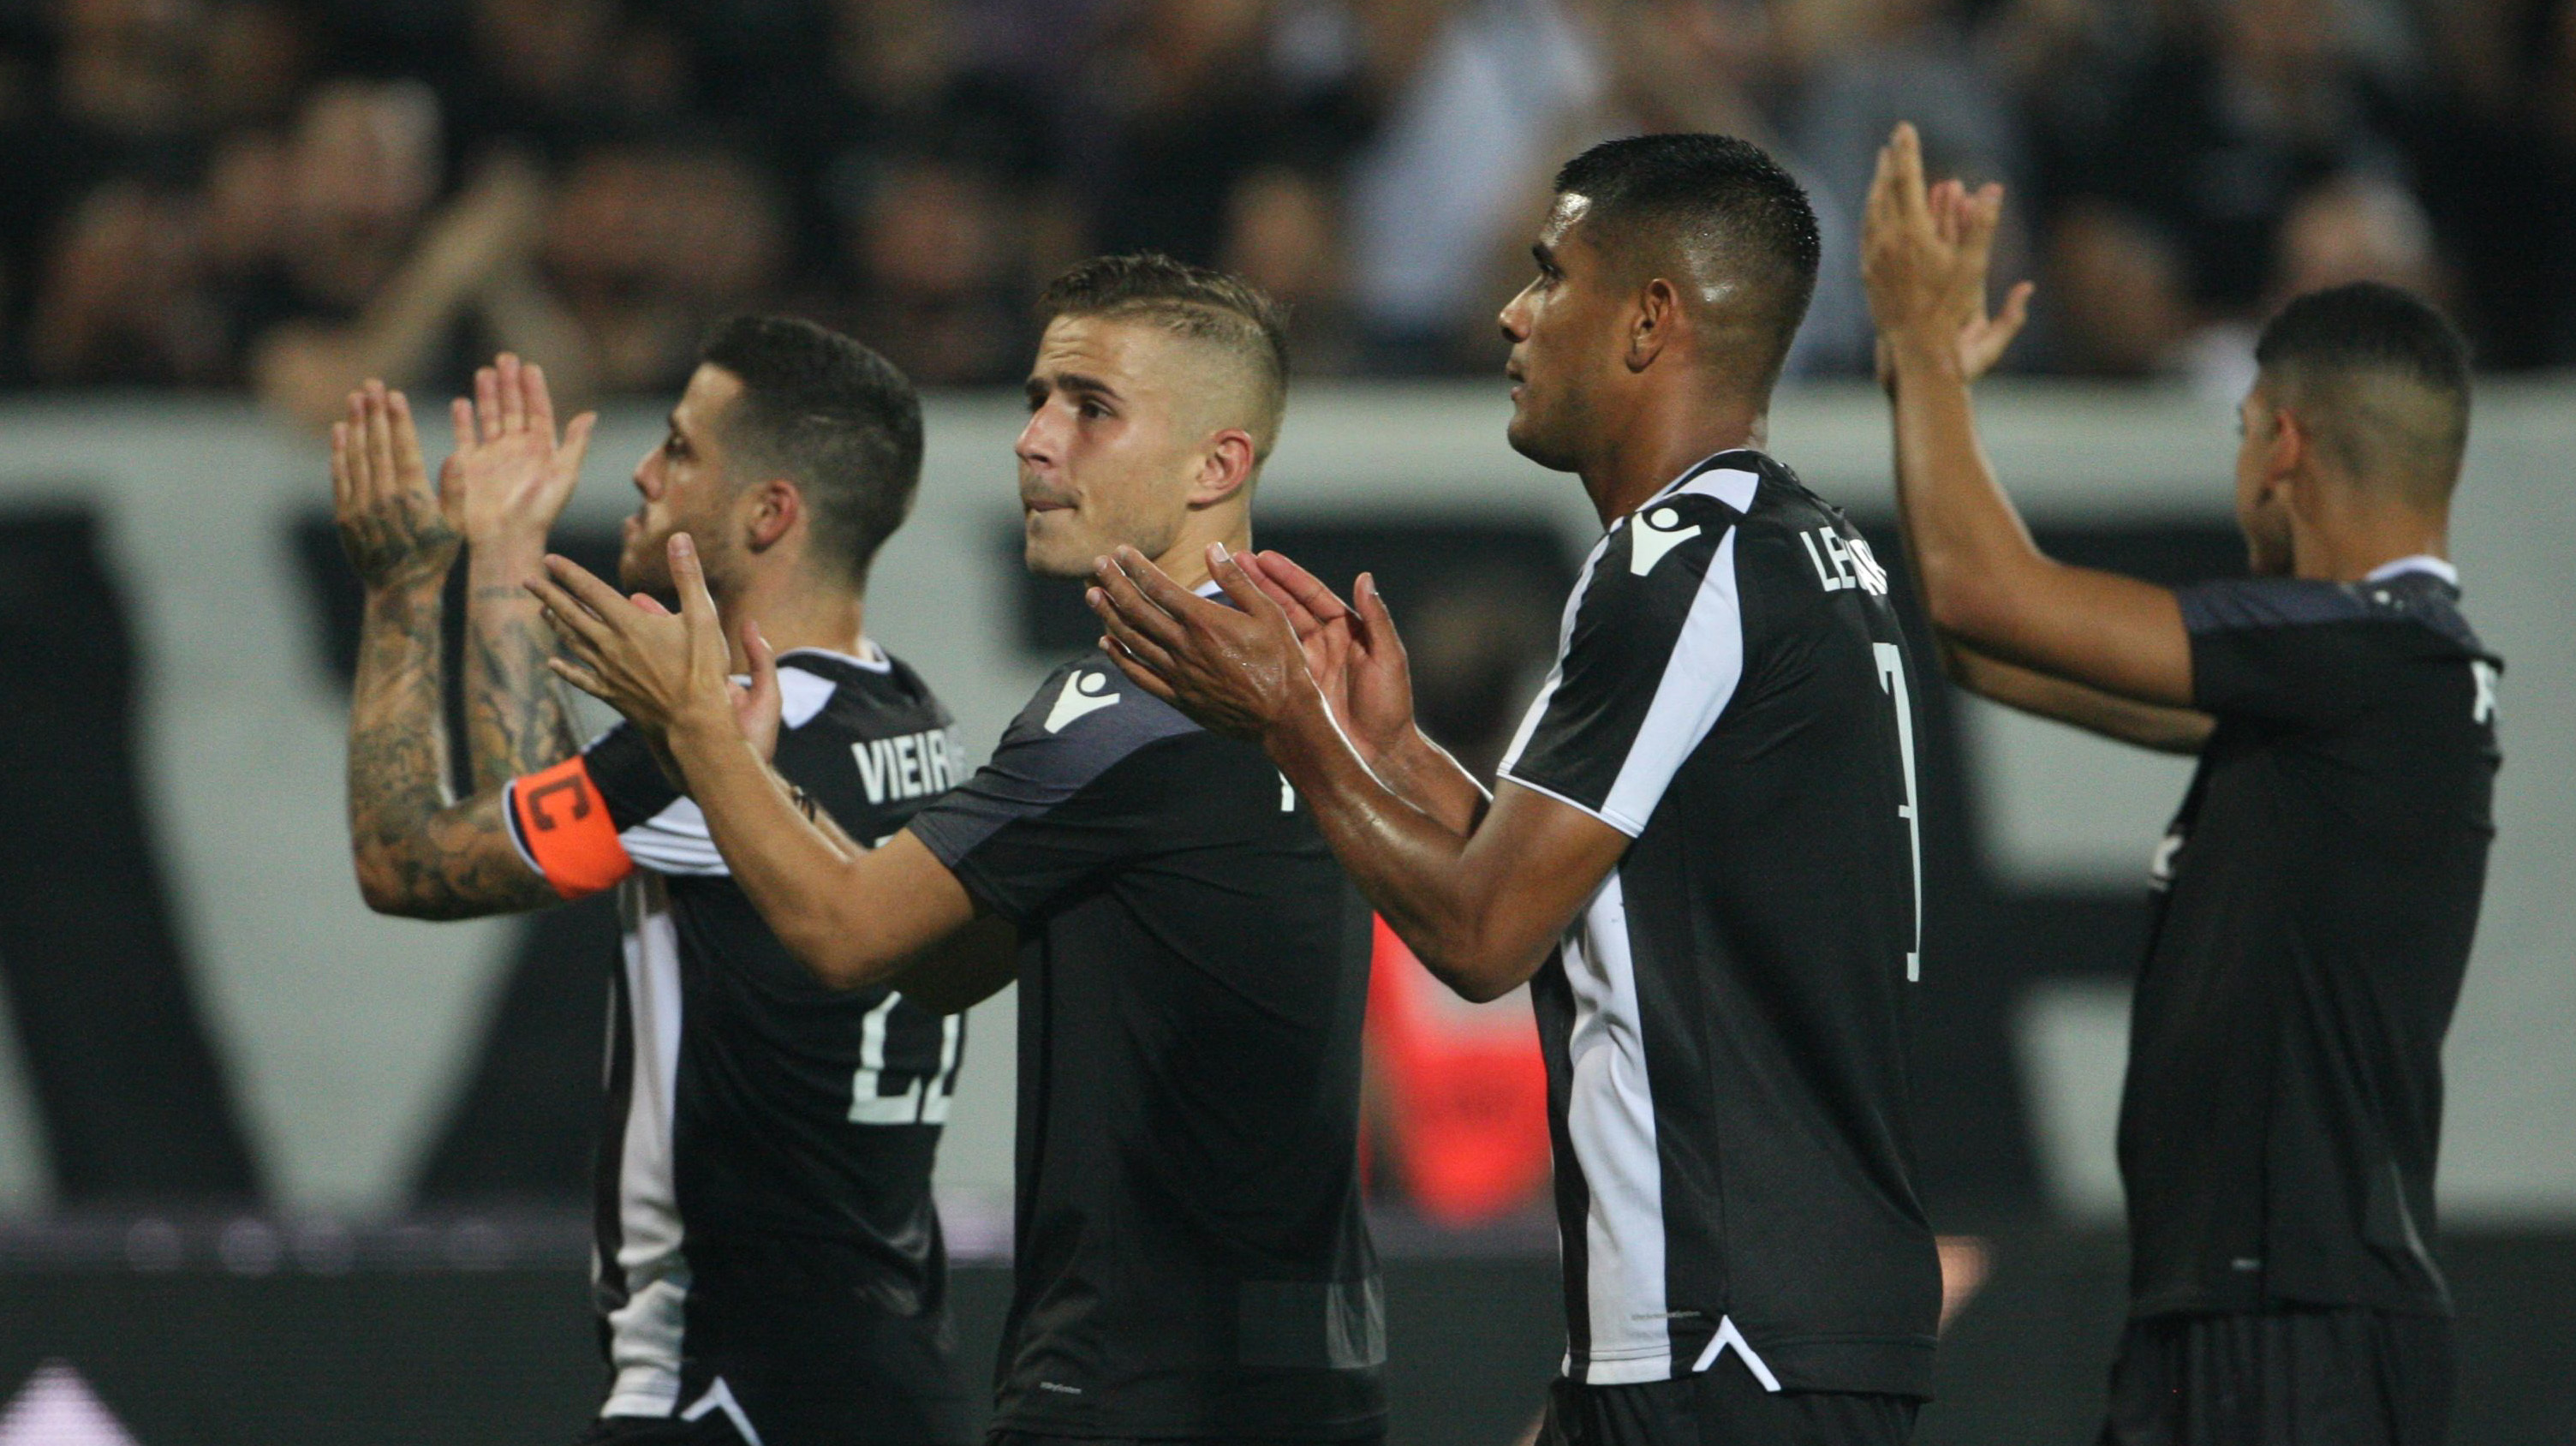 PAOK – AEK Athens: Backstage camera